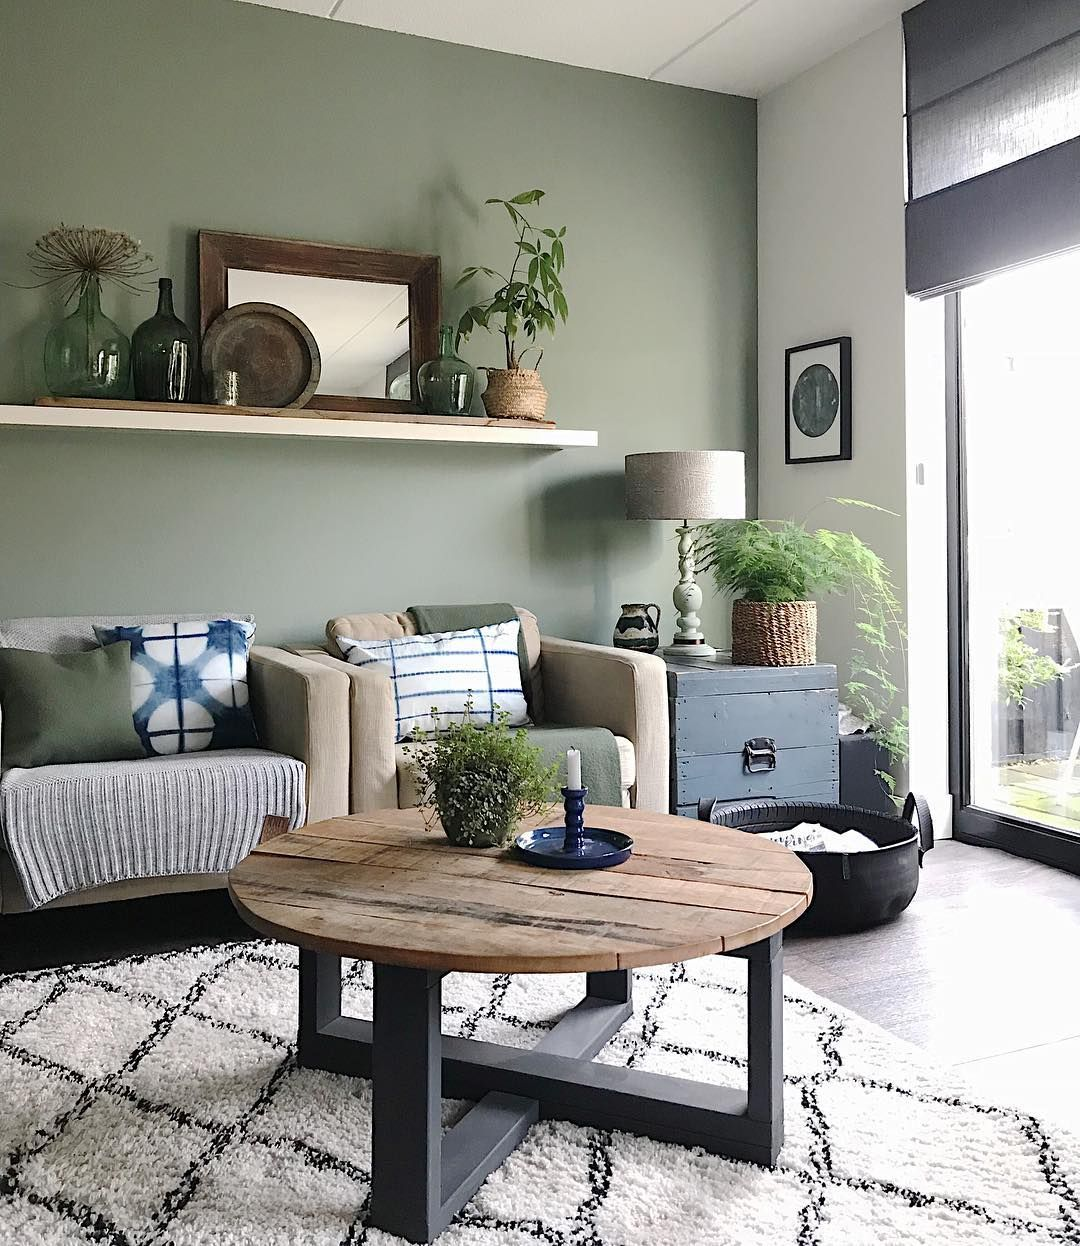 Living room decor home area designs also green house wall business in pinterest rh nl